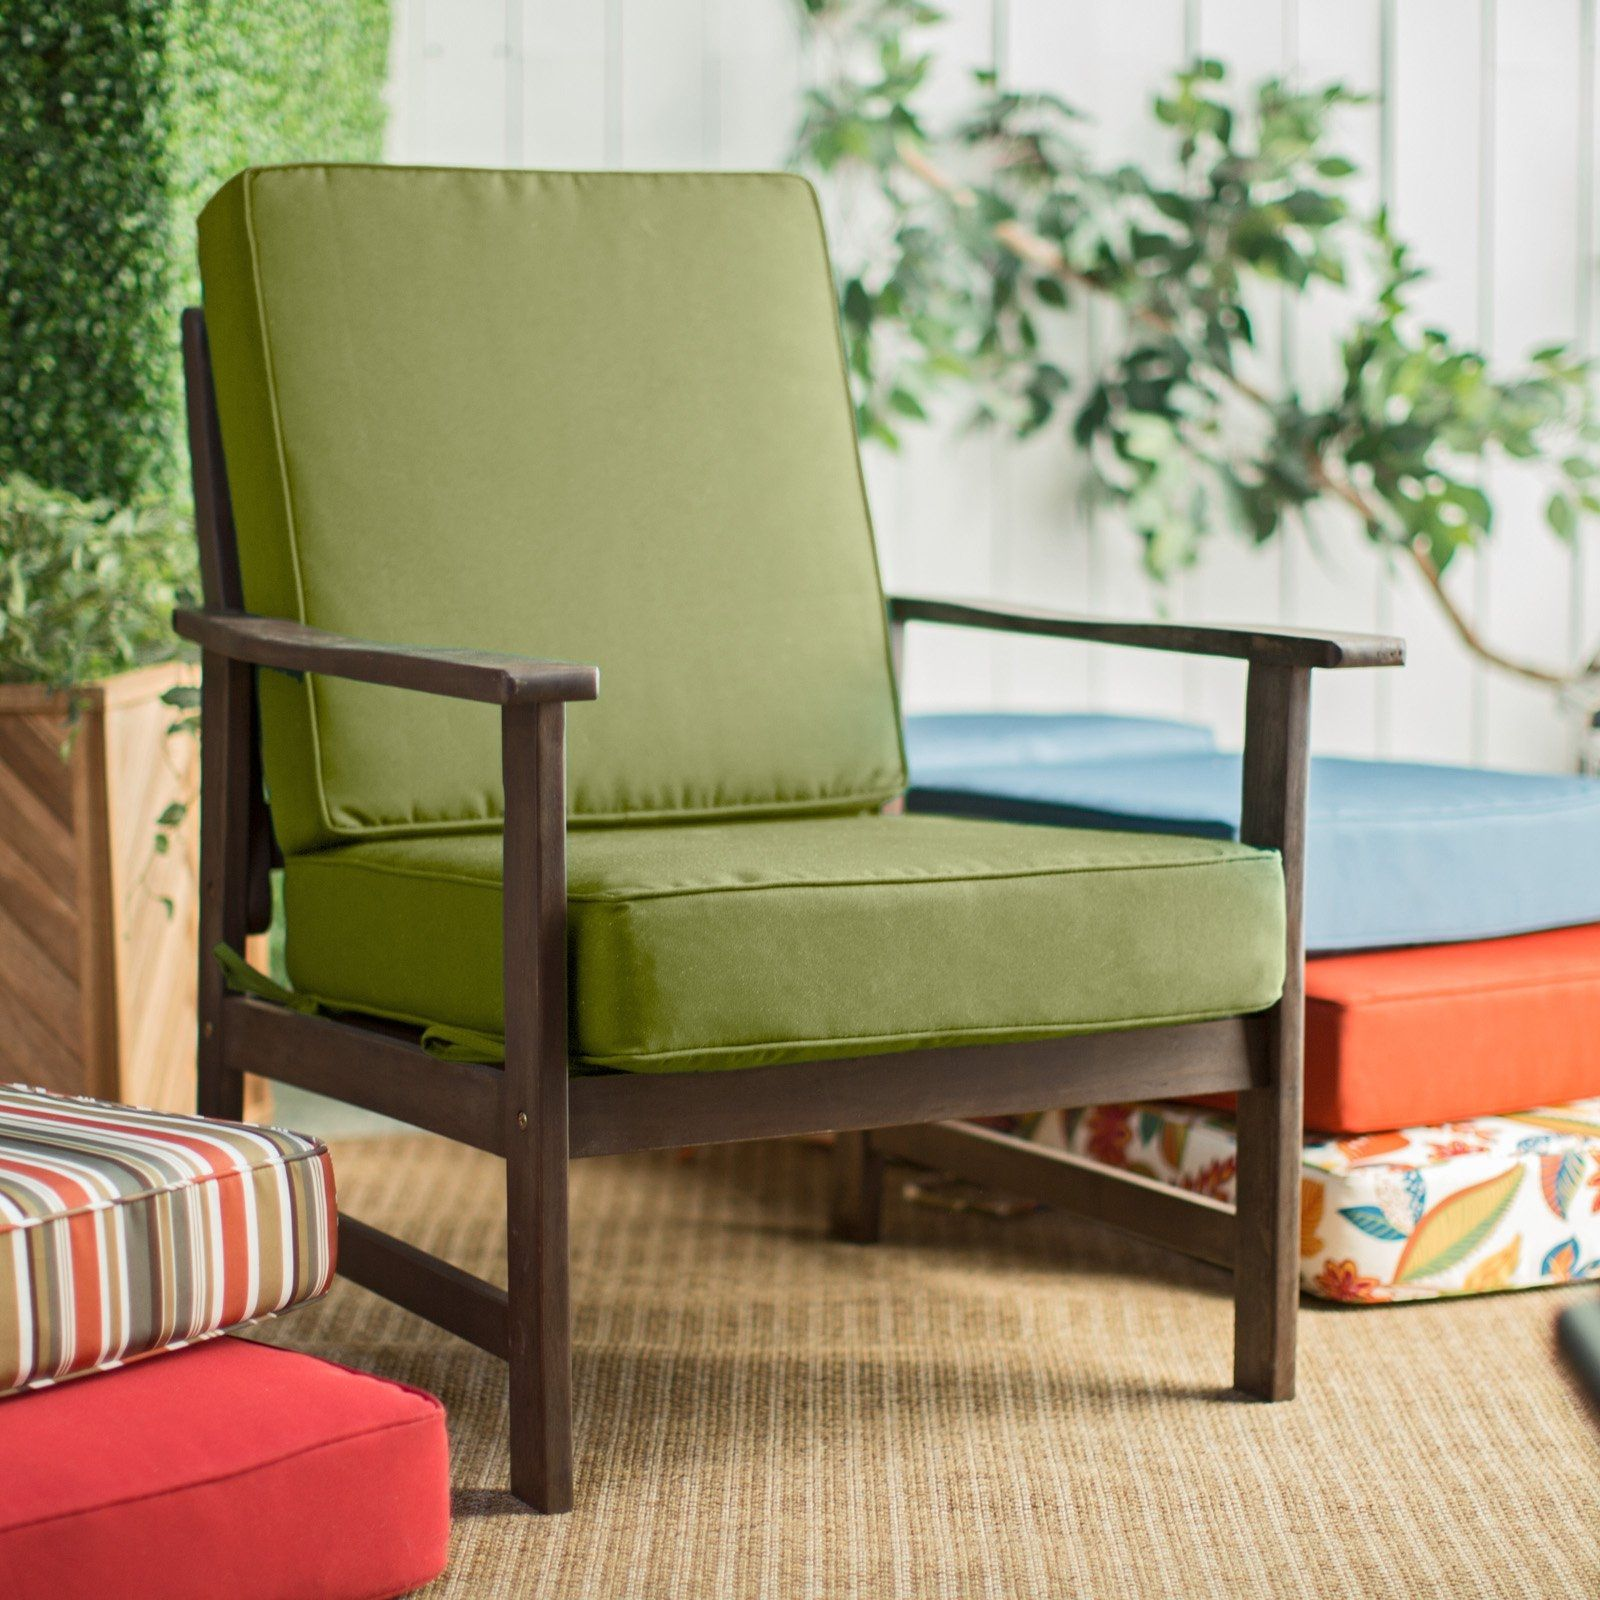 Seat Covers For Patio Chairs